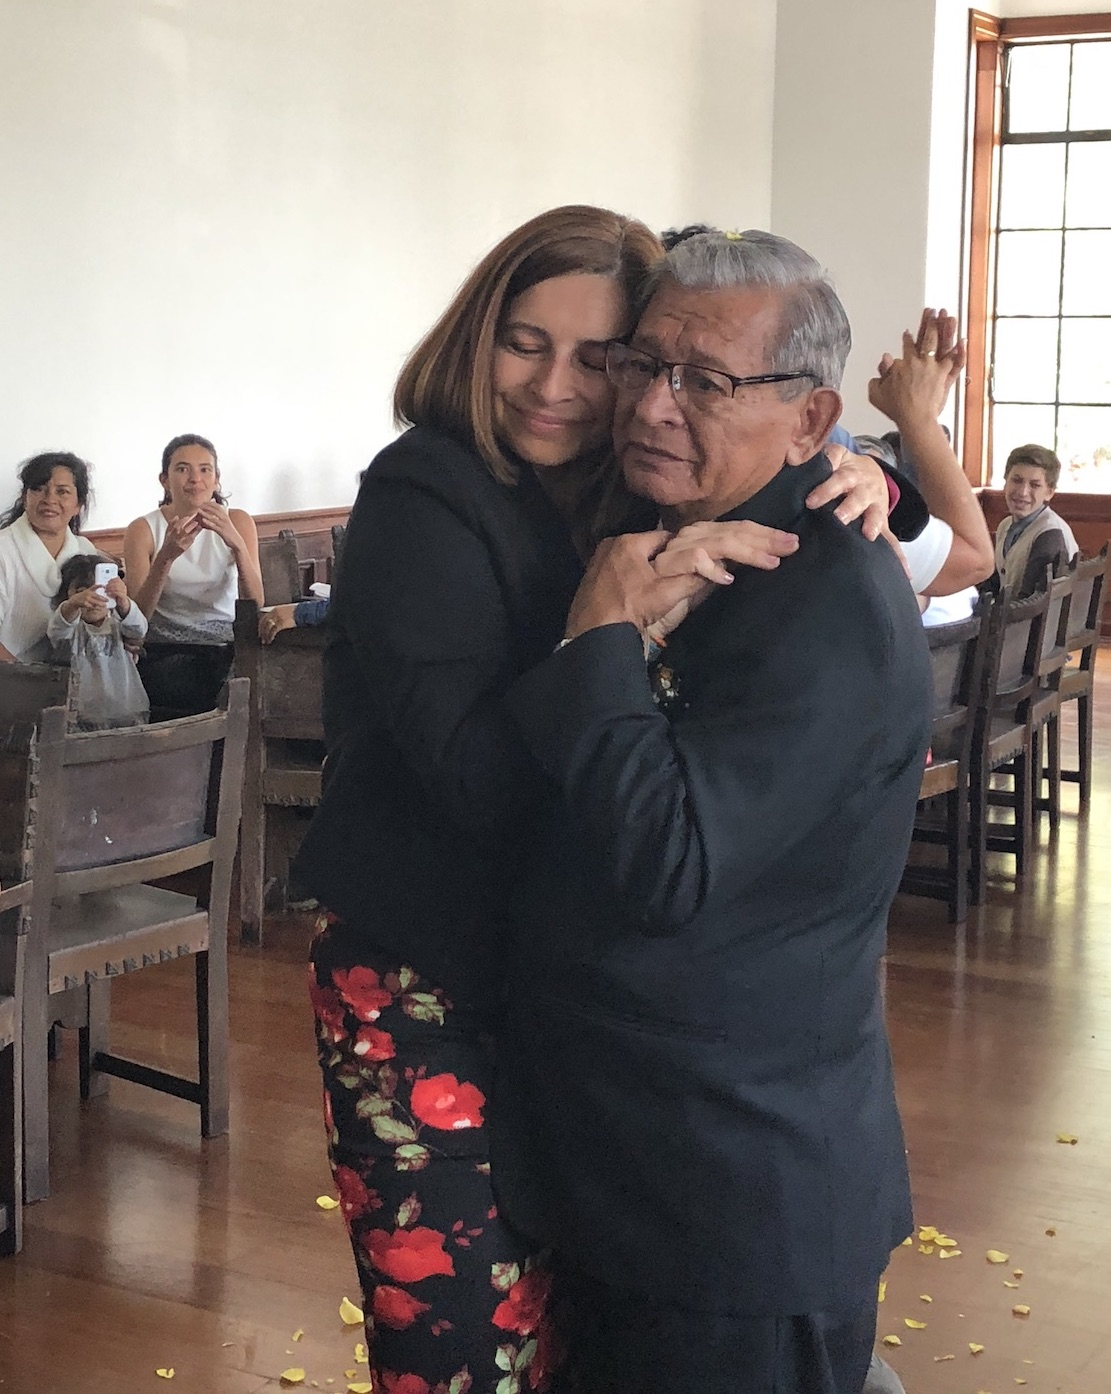 The author dances with her father on his wedding day, February 2, 2018, in Zipaquira, Colombia. [Photo] Ana Beatriz Cholo collection